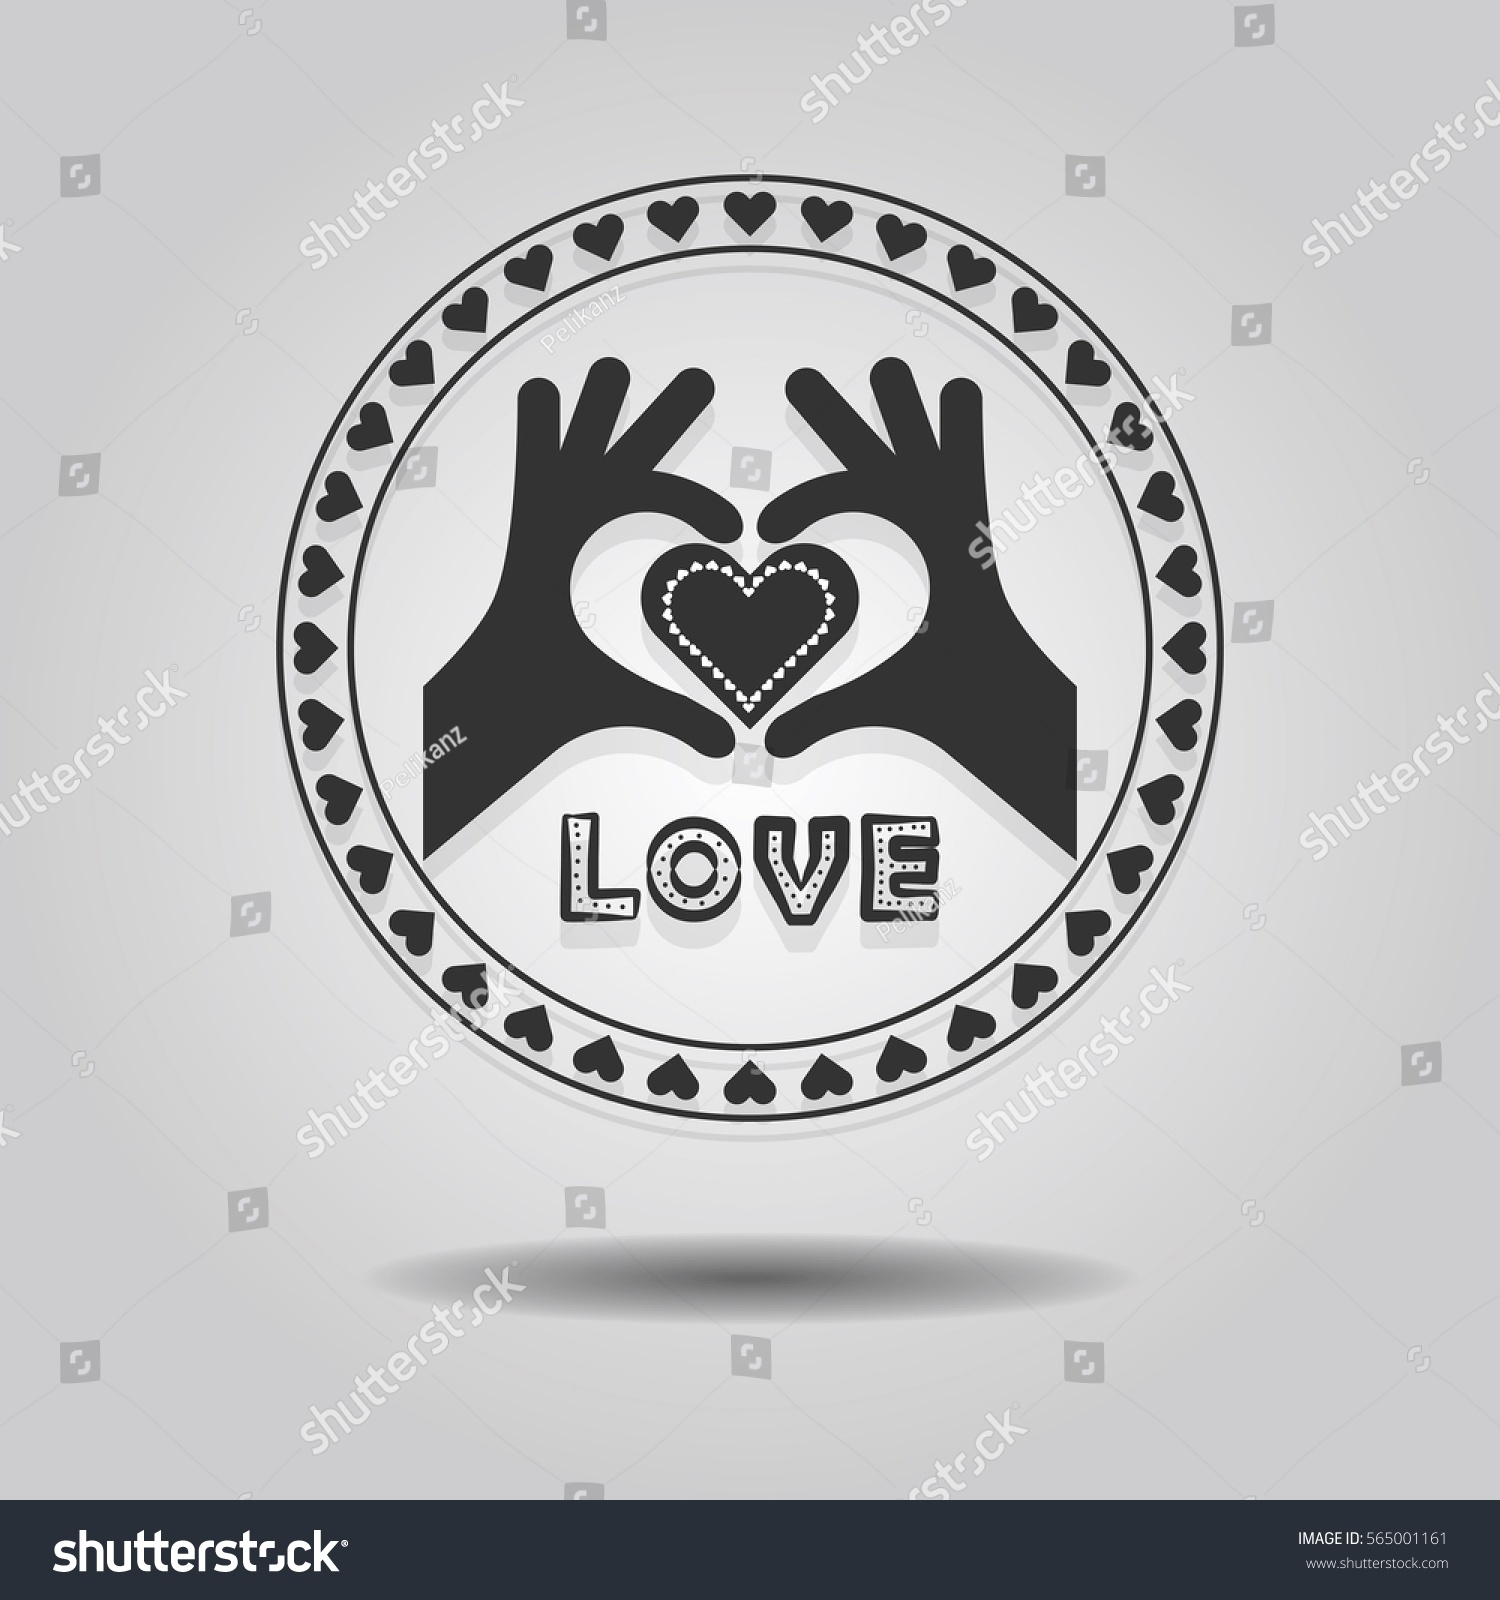 Abstract showing heart symbol hands word stock vector 565001161 abstract showing heart symbol hands and word love in circle emblem on gray gradient background buycottarizona